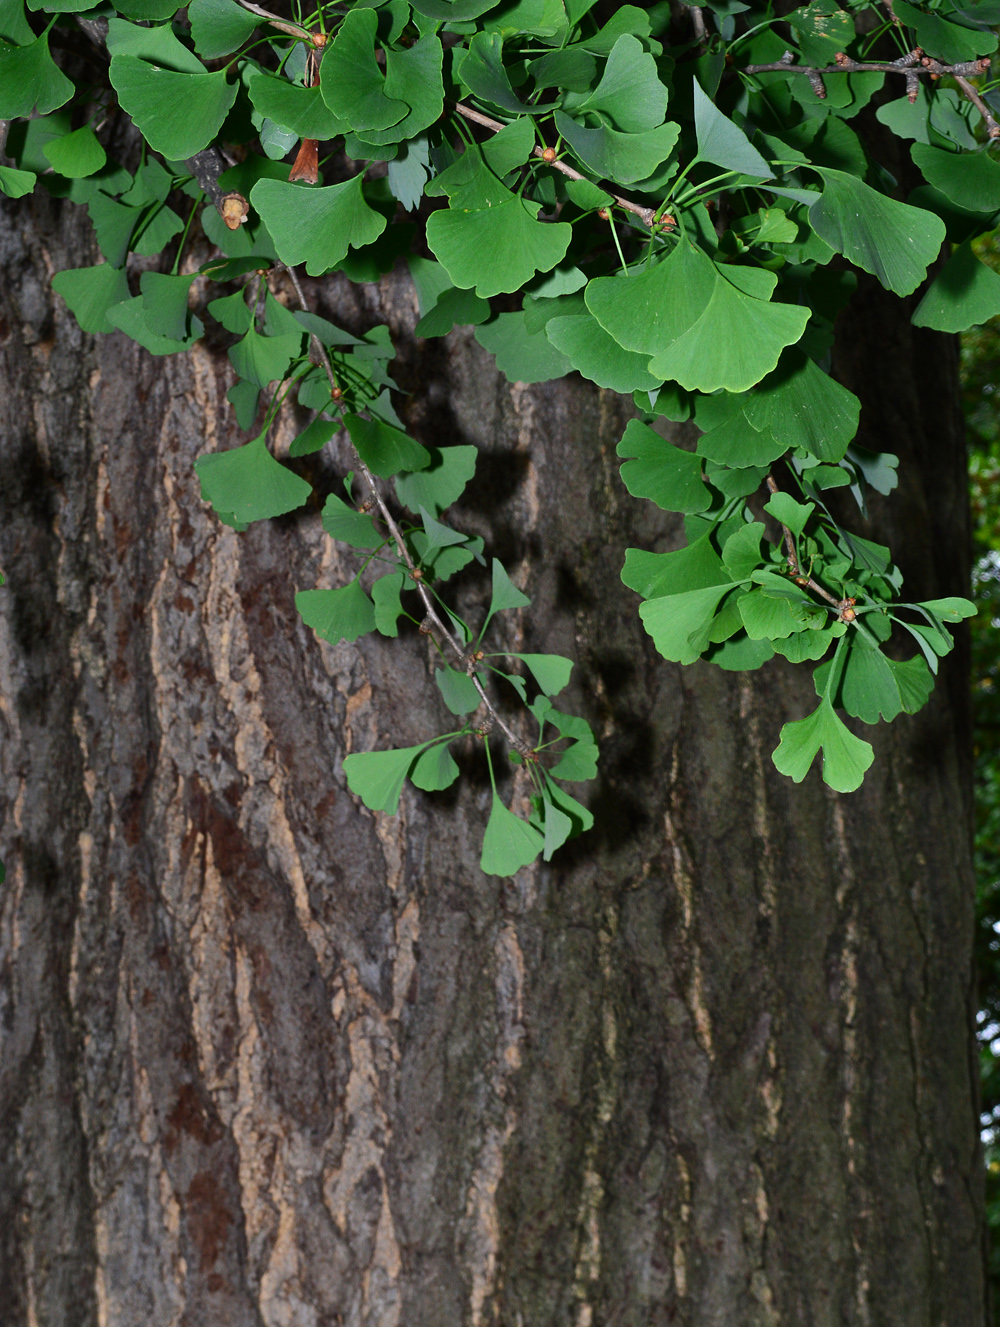 The Ginkgo leaf and tree bark